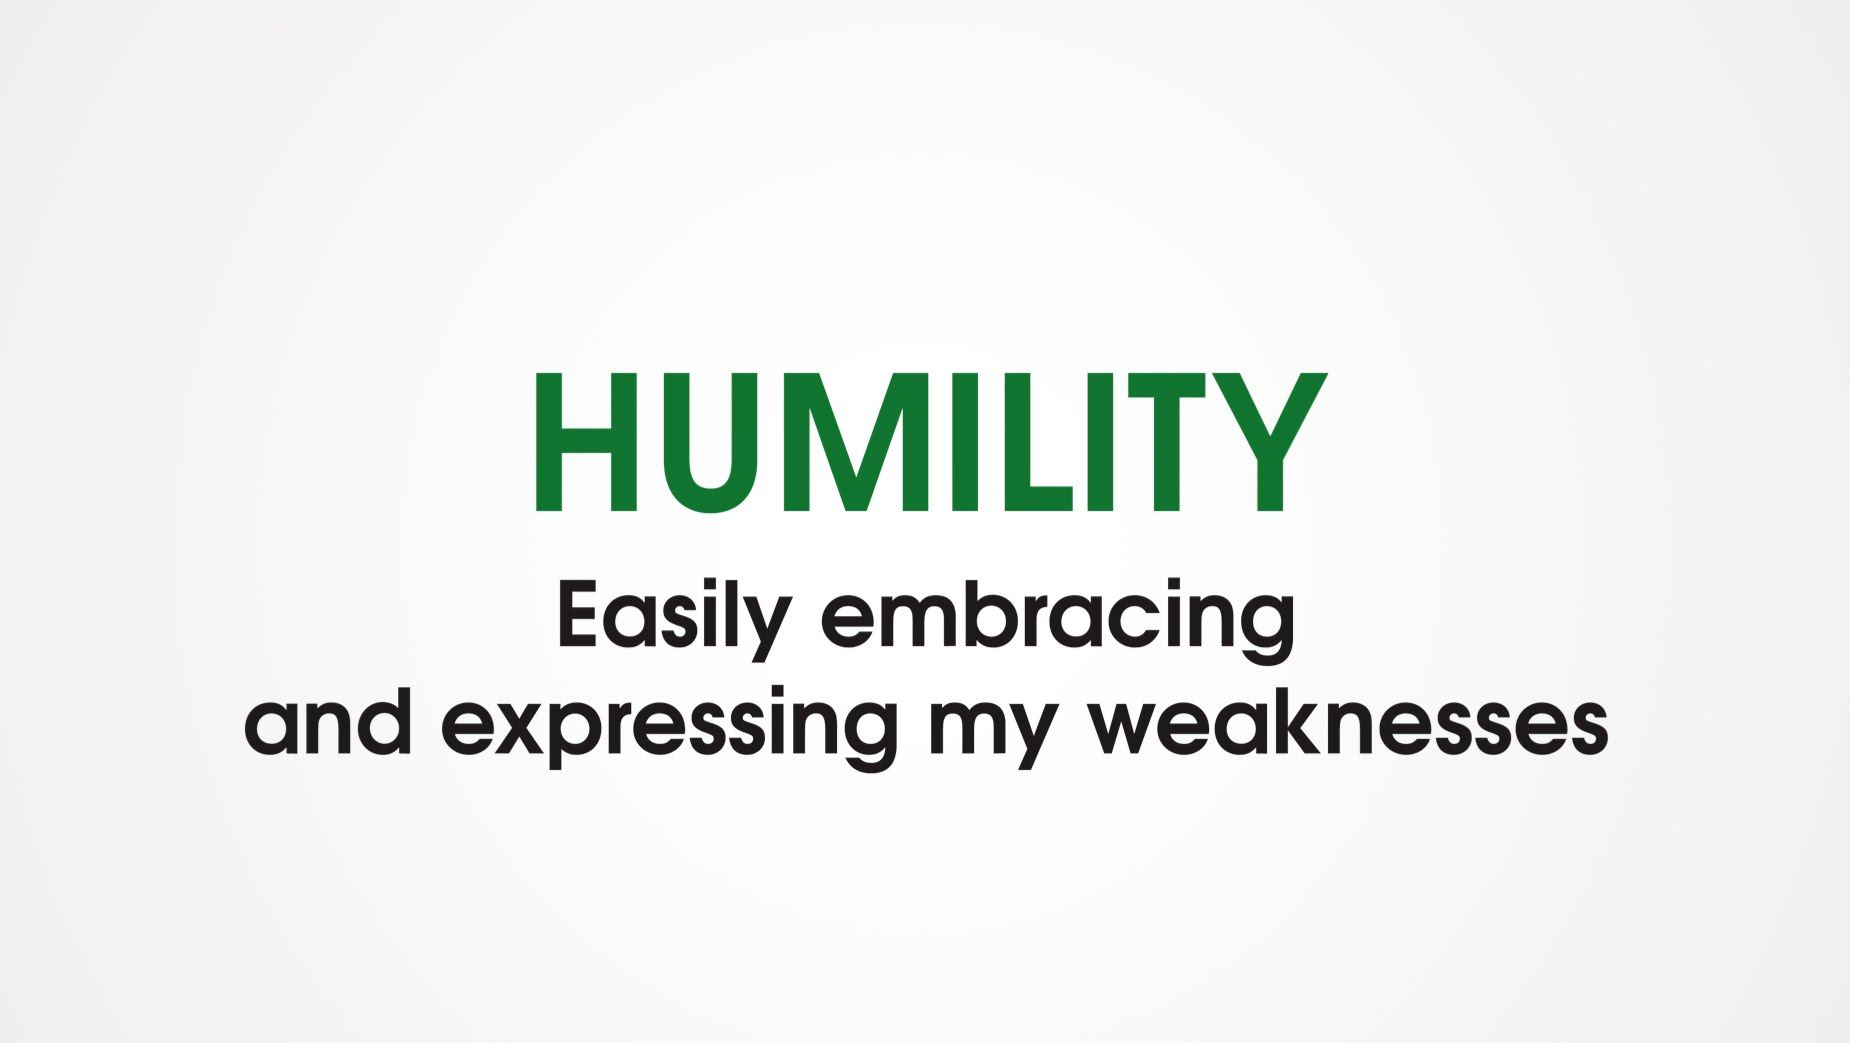 HUMILITY is choosing to easily embrace and express my